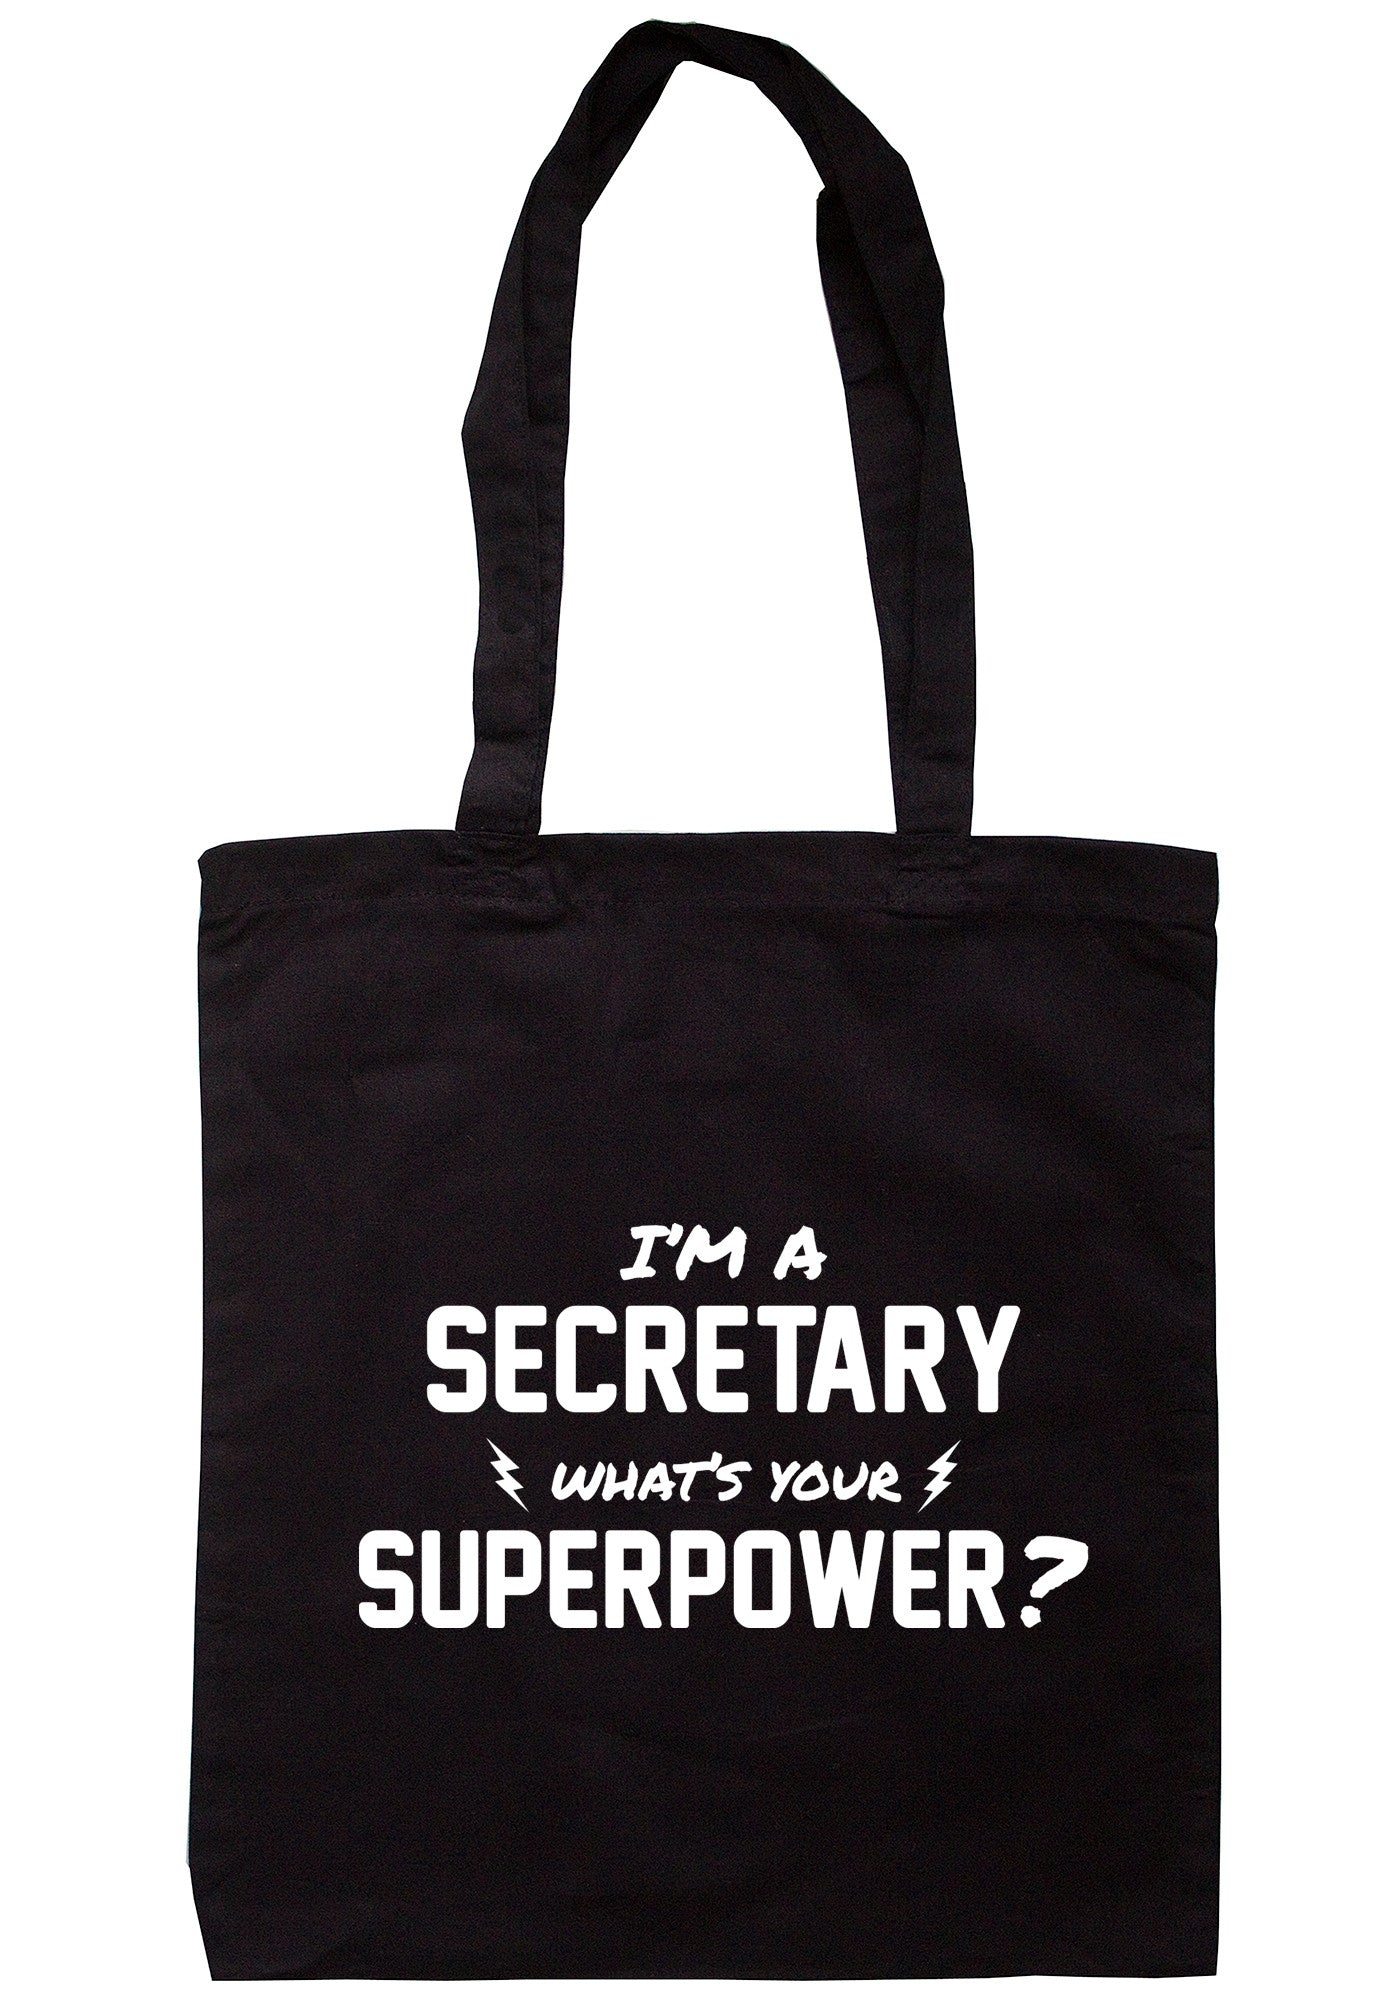 I'm A Secretary What's Your Superpower? Tote Bag TB0518 - Illustrated Identity Ltd.